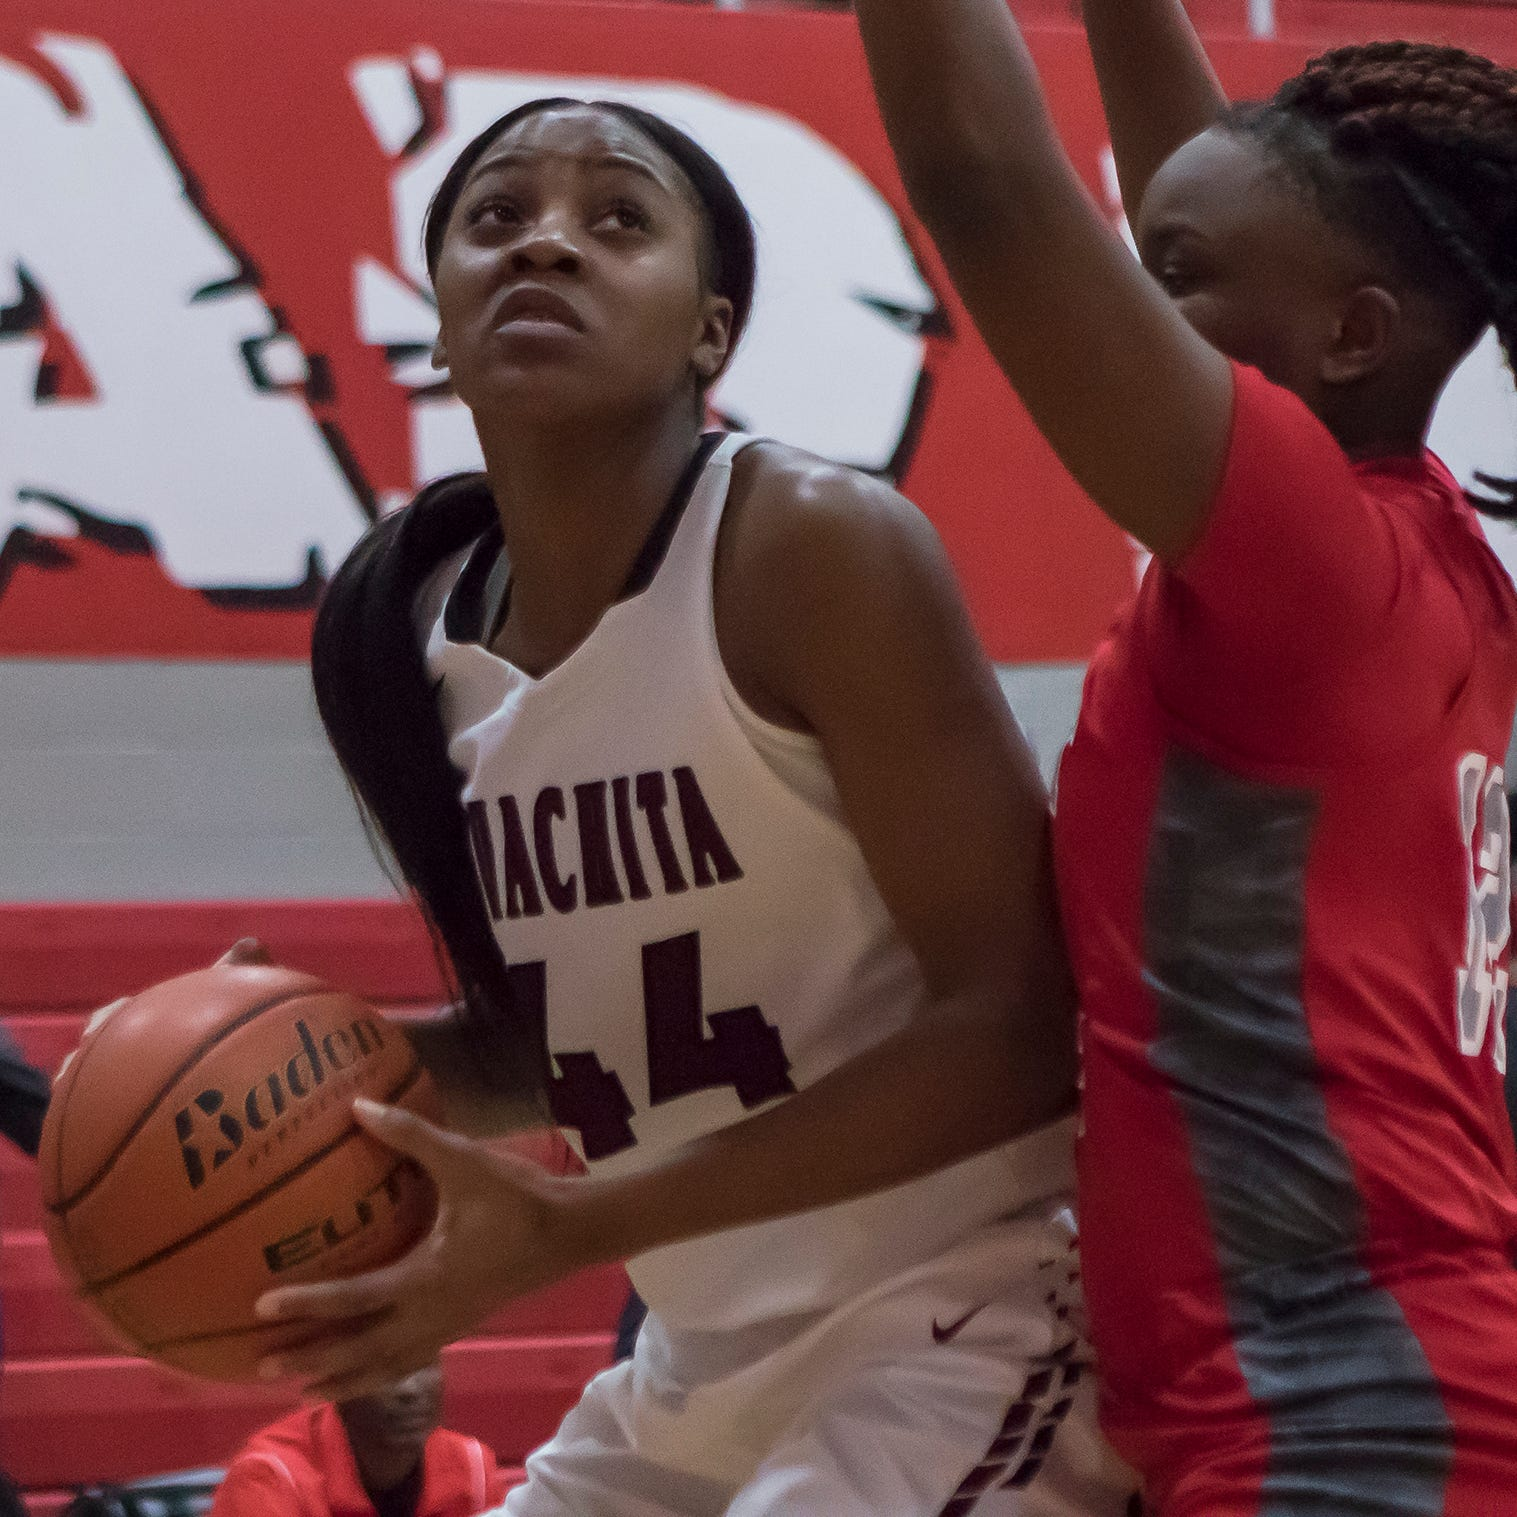 Ouachita's Mahoganie Williams (44) looks to score a basket against West Jefferson's Jada Bowman (12) during the Class 5A playoff game at Ouachita High School on Feb. 14. Ouachita would win the game 71- 25 to advance to the next round.